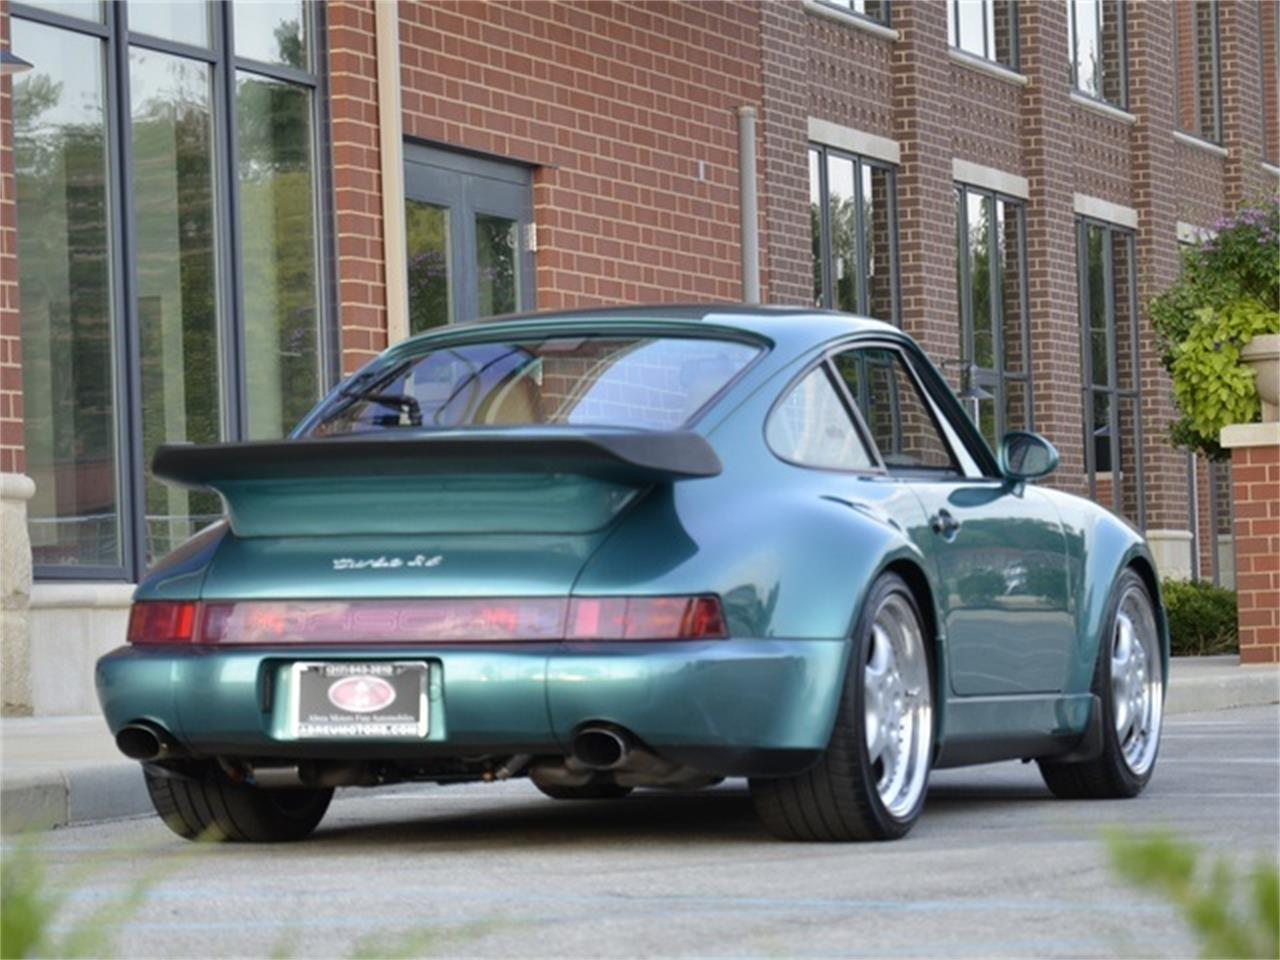 Large Picture of '94 Porsche 911 Turbo located in Carmel Indiana Auction Vehicle - FX1T